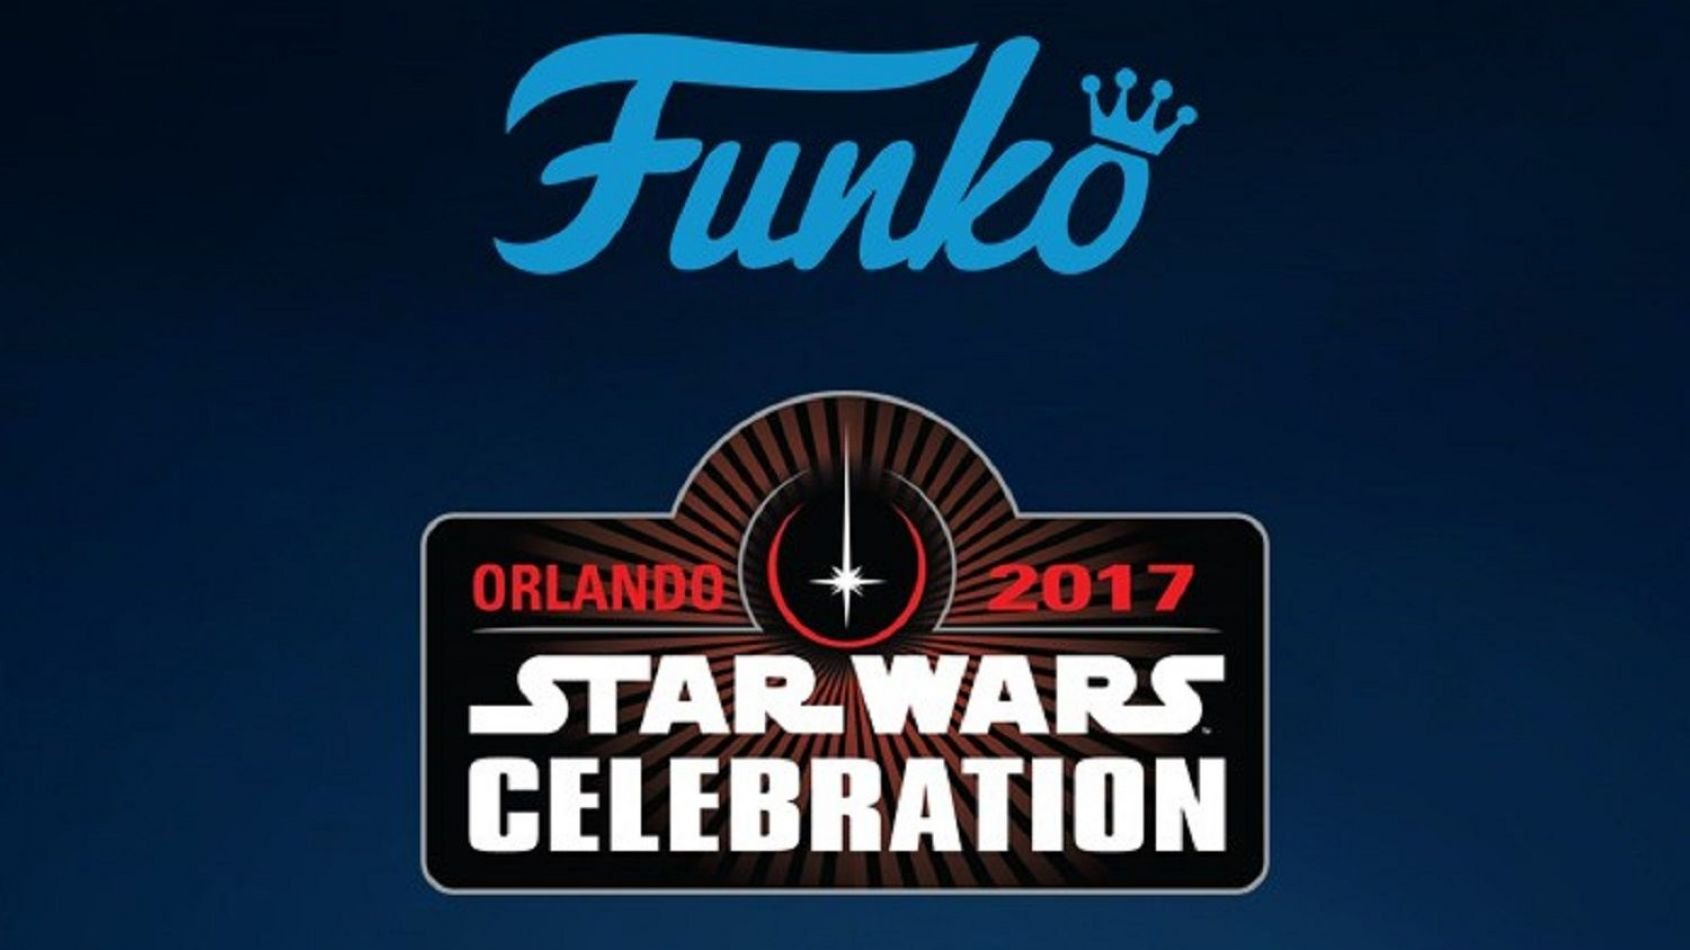 Des figurines exclusives Funko pour Star Wars Celebration